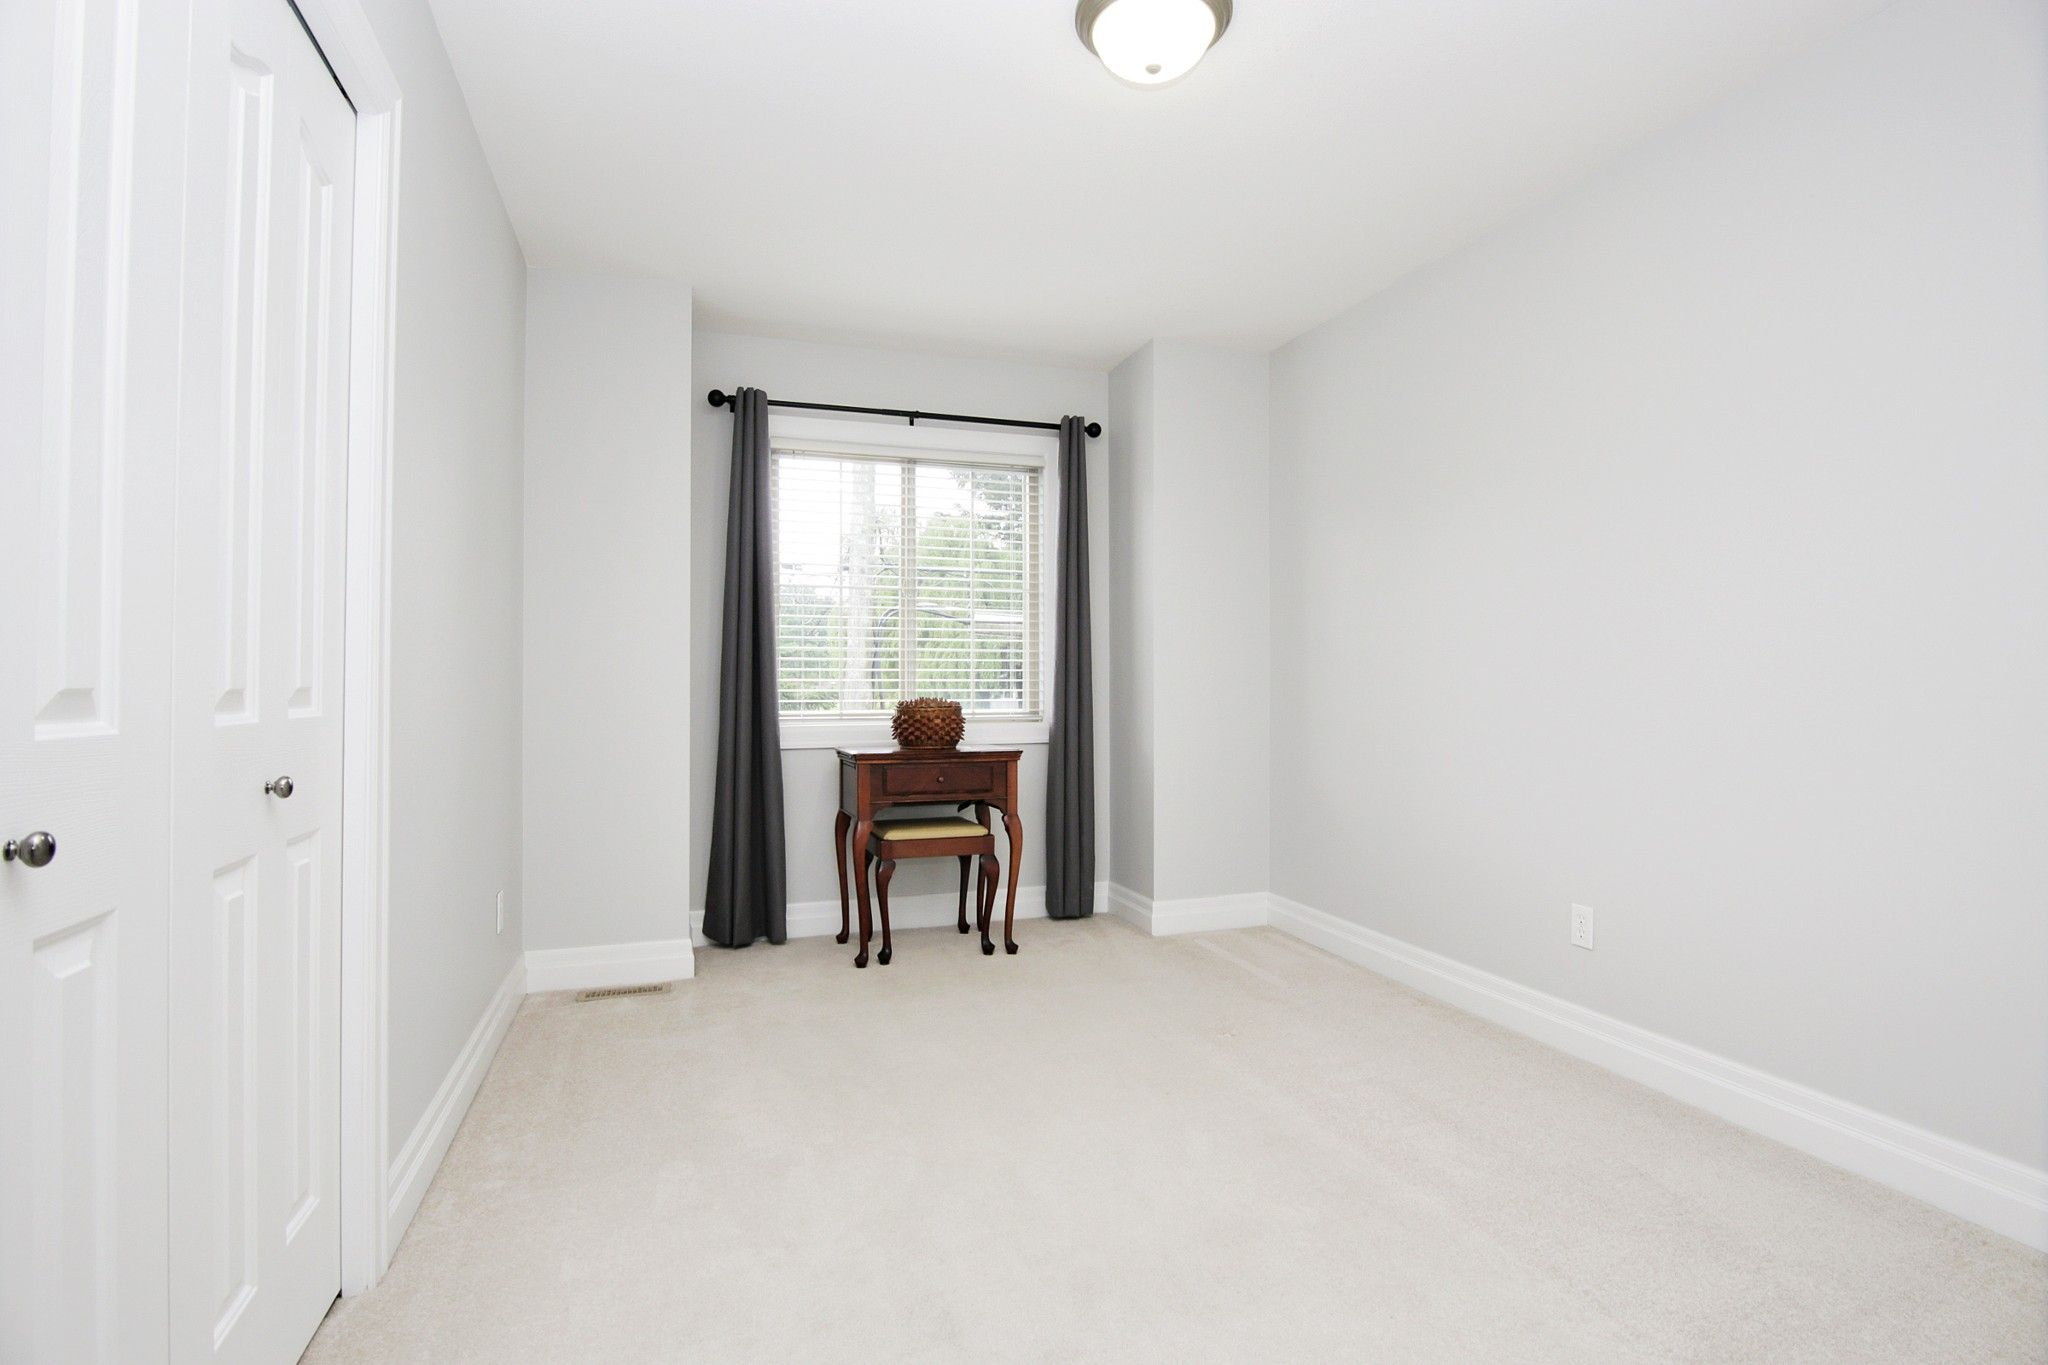 """Photo 19: Photos: 25 6450 BLACKWOOD Lane in Chilliwack: Sardis West Vedder Rd Townhouse for sale in """"THE MAPLES"""" (Sardis)  : MLS®# R2581381"""